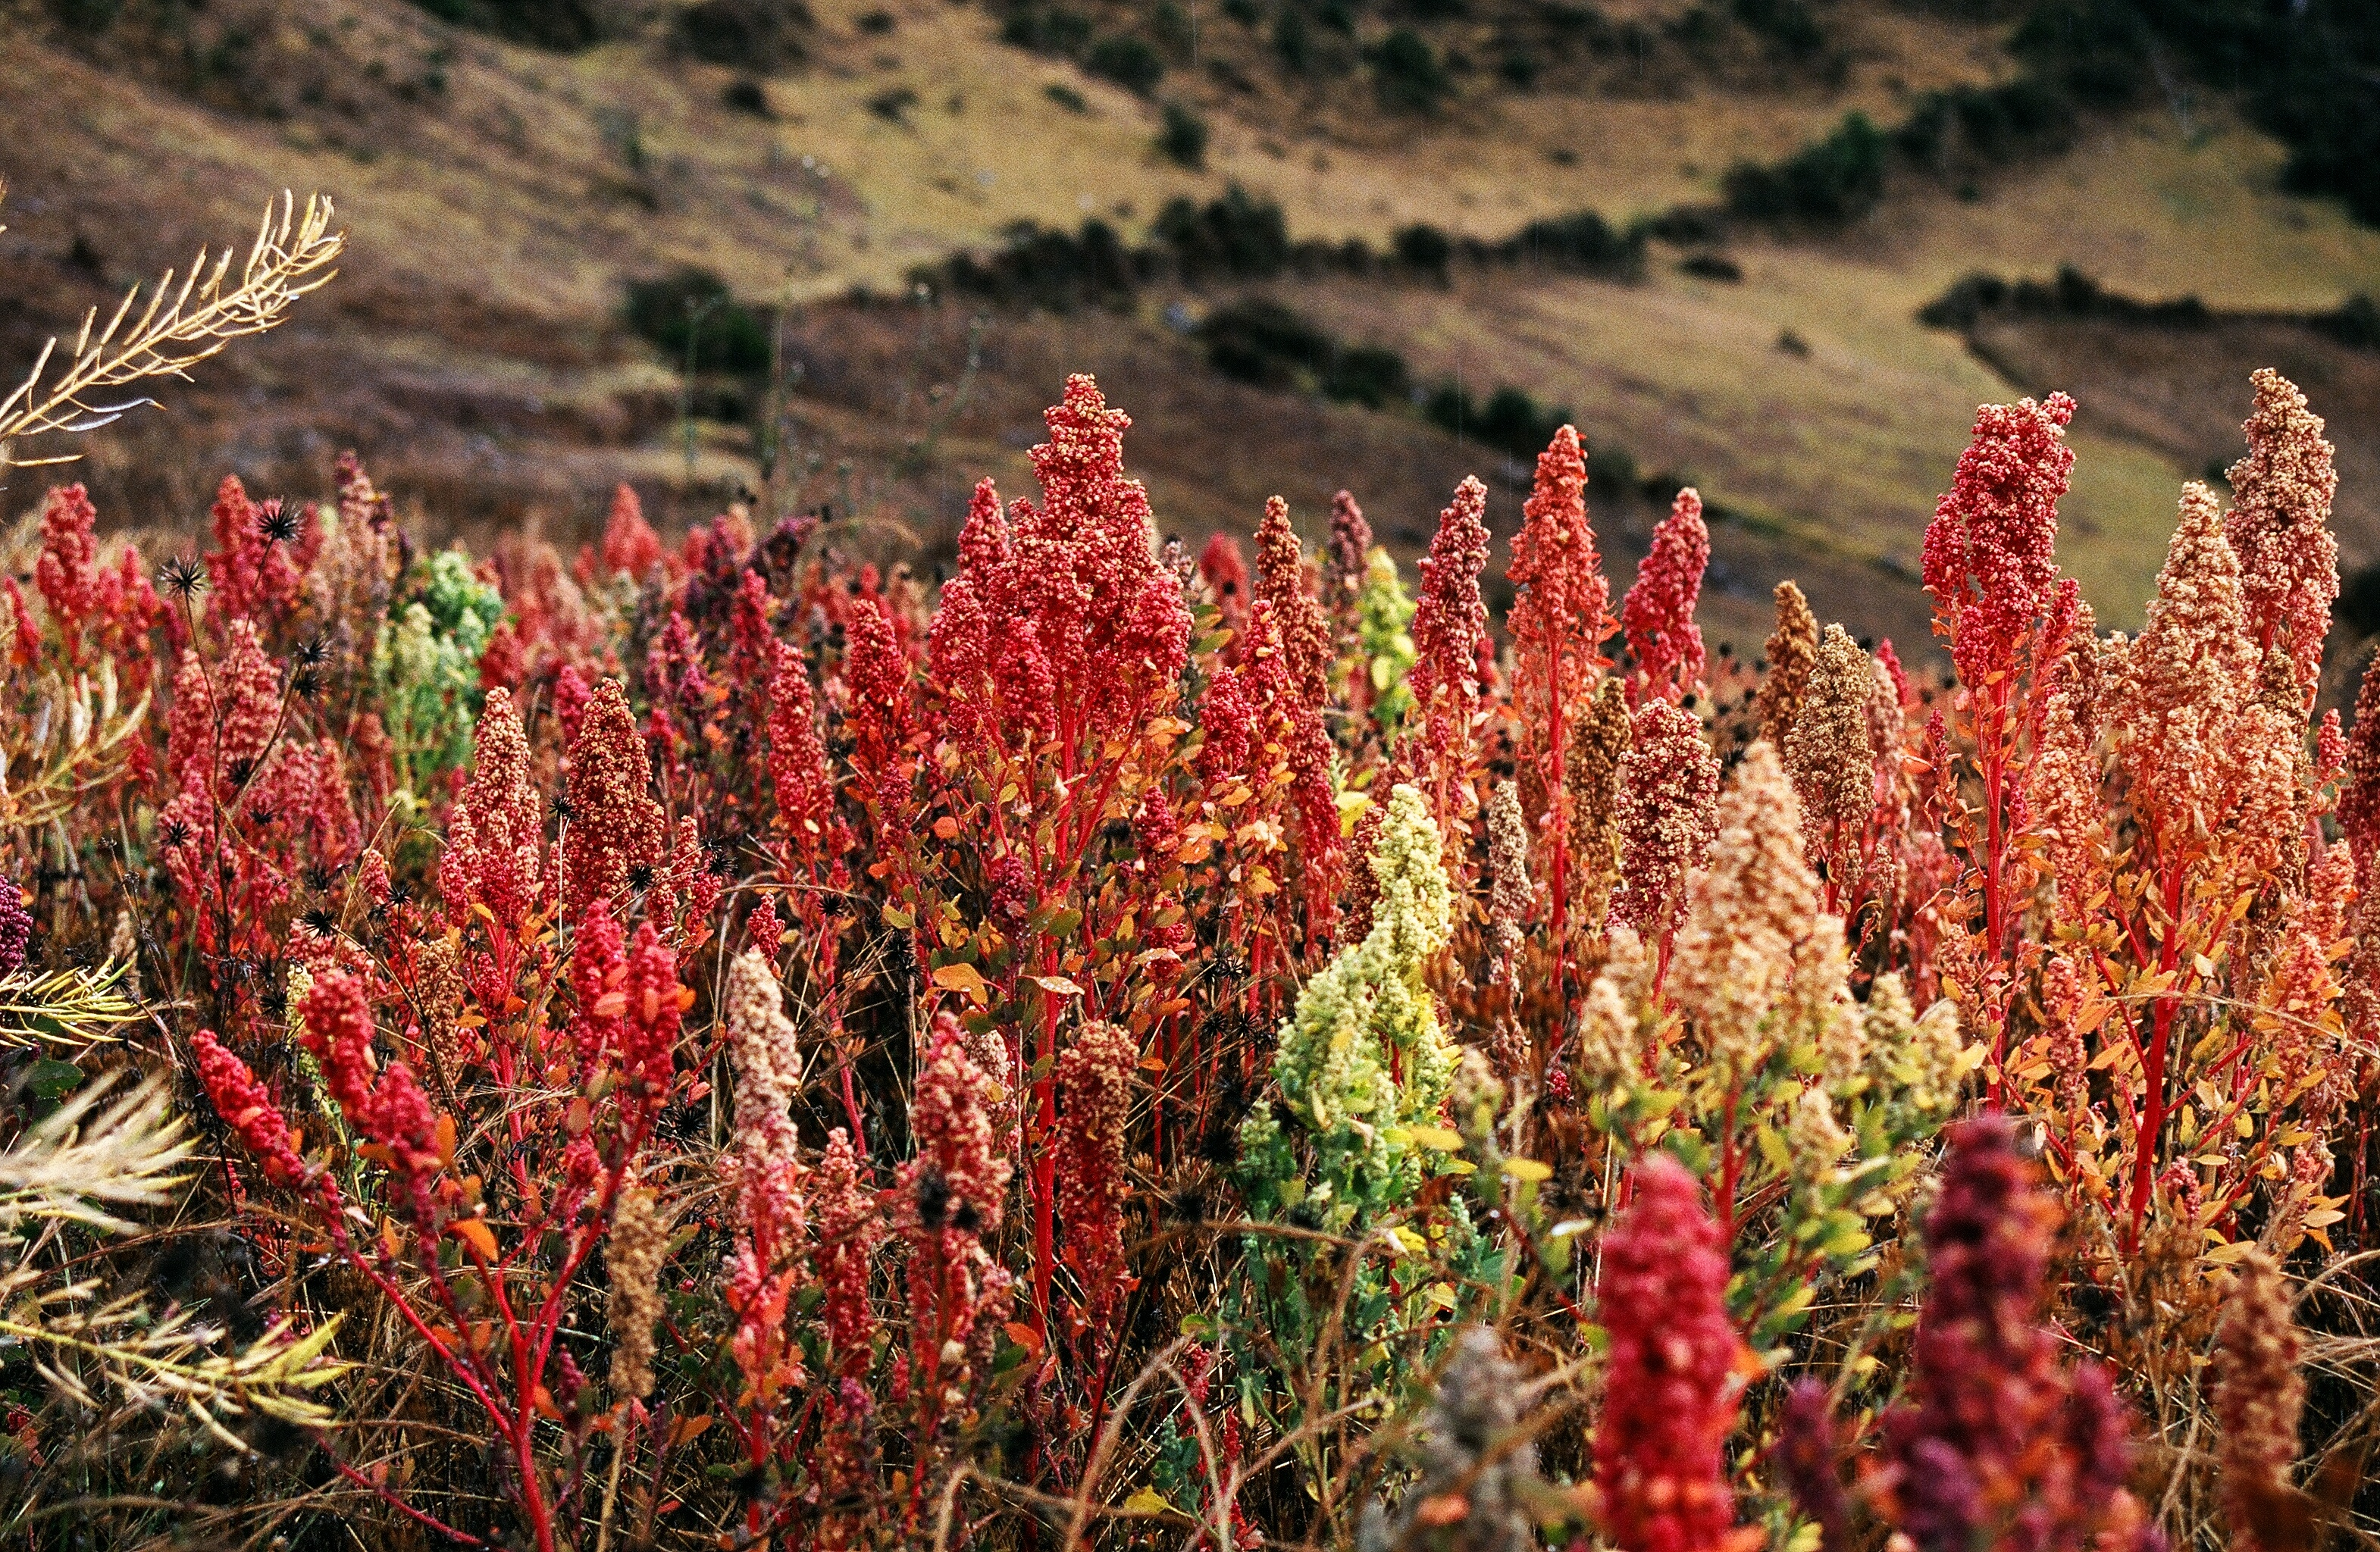 WholeDude - WholeDesigner - WholeMagic: Chenopodium quinoa. The seeds when boiled release Seminous odor and it is very remarkable coincidence between the odor generated by a plant and the glands of human male reproductive system